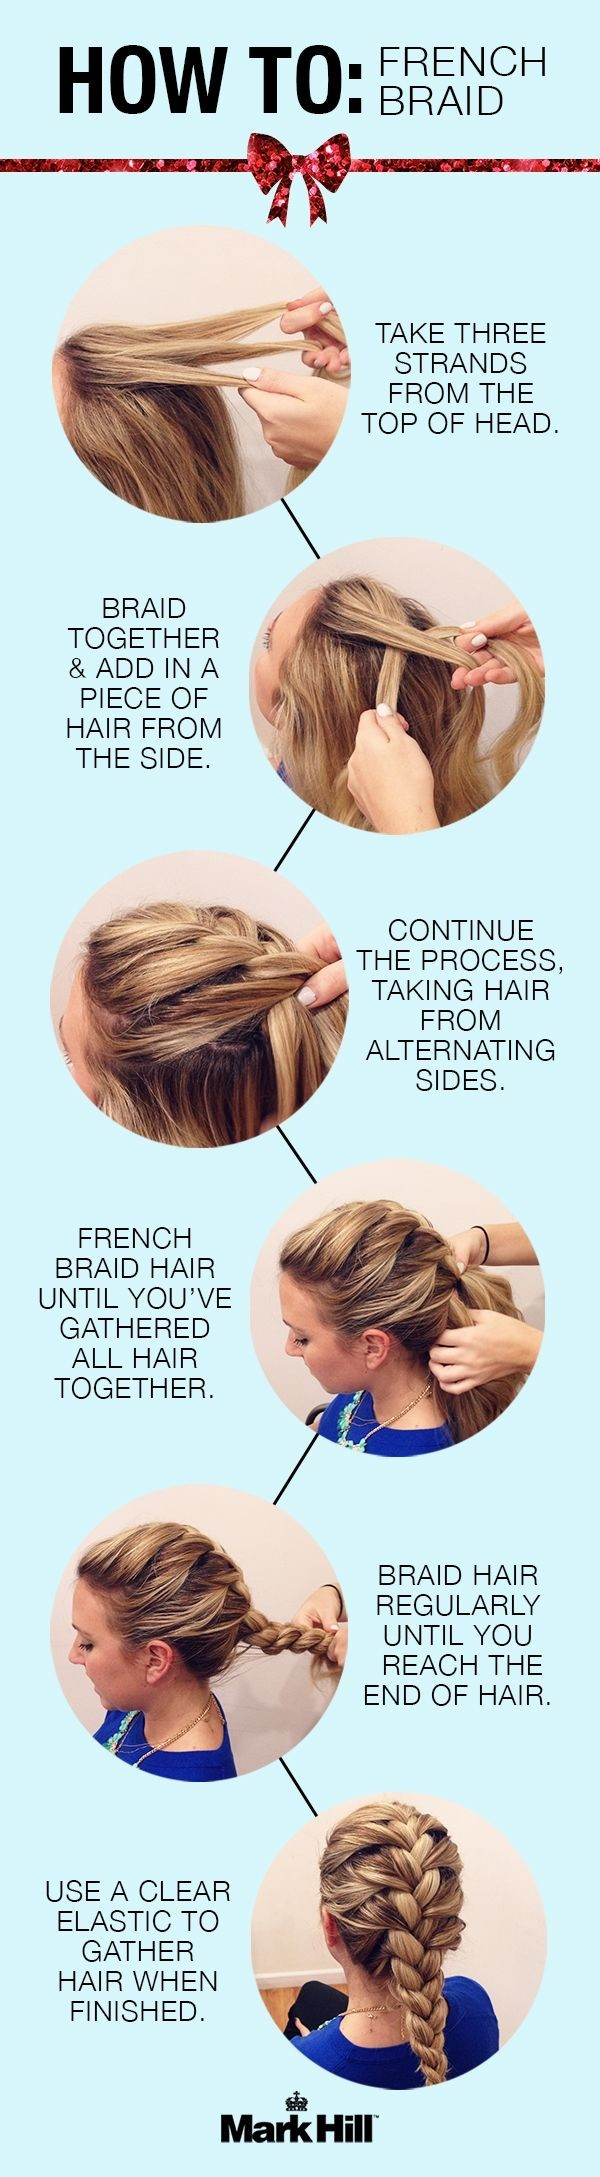 12 amazing french braid hairstyles tutorials pretty designs classic french braid hairstyle tutorial solutioingenieria Gallery